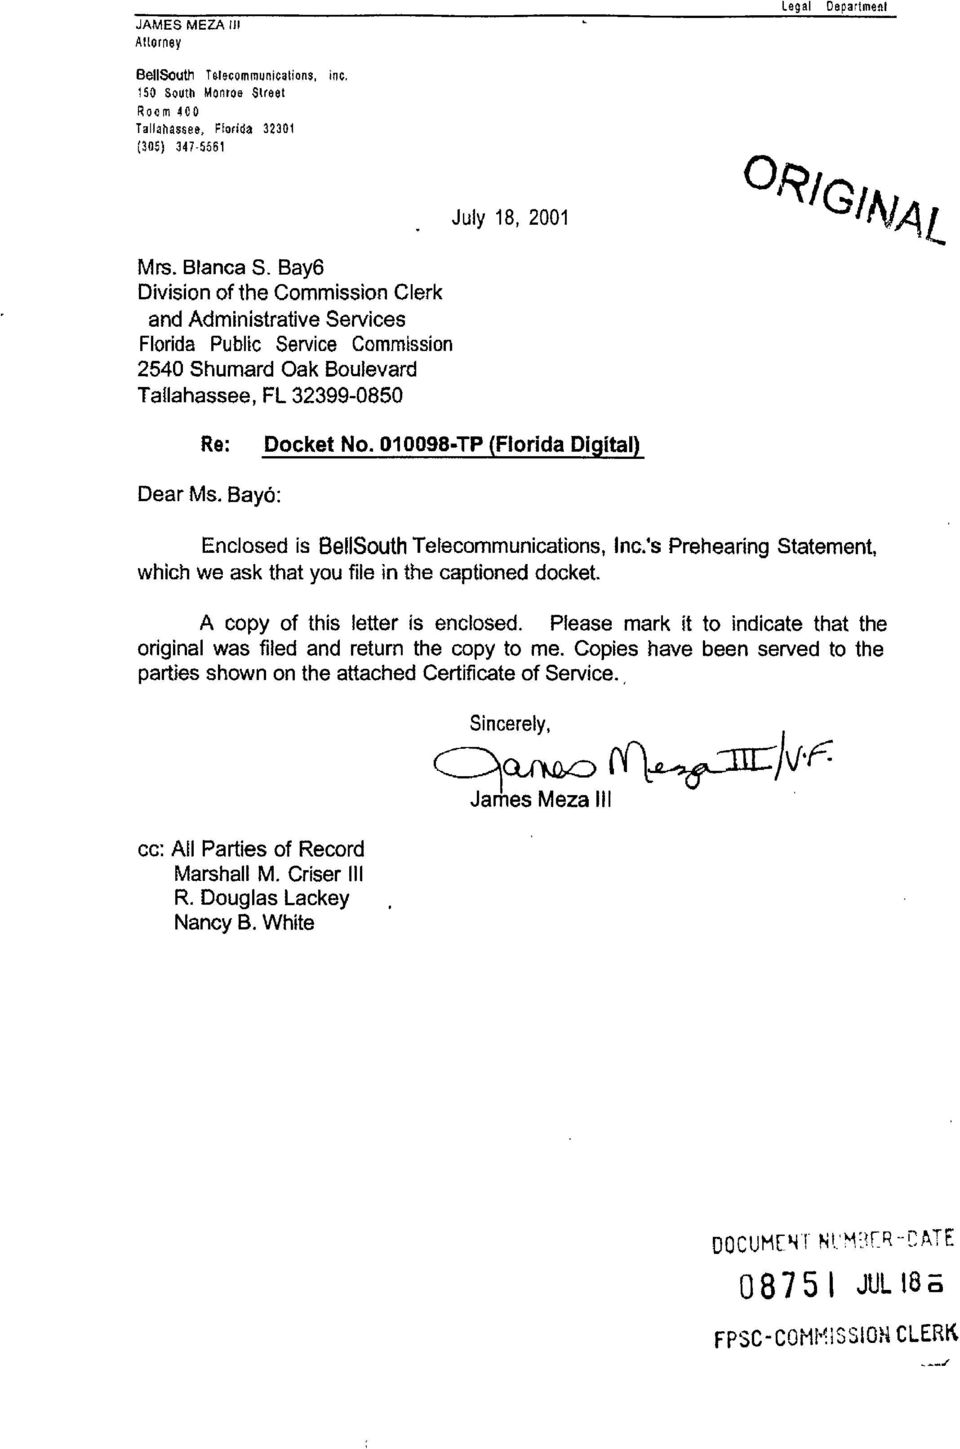 01 0098-TP (Florida Diaitall Dear Ms. Bayo: Enclosed is BellSouth Telecommunications, Inc.'s Prehearing Statement, which we ask that you file in the captioned docket.